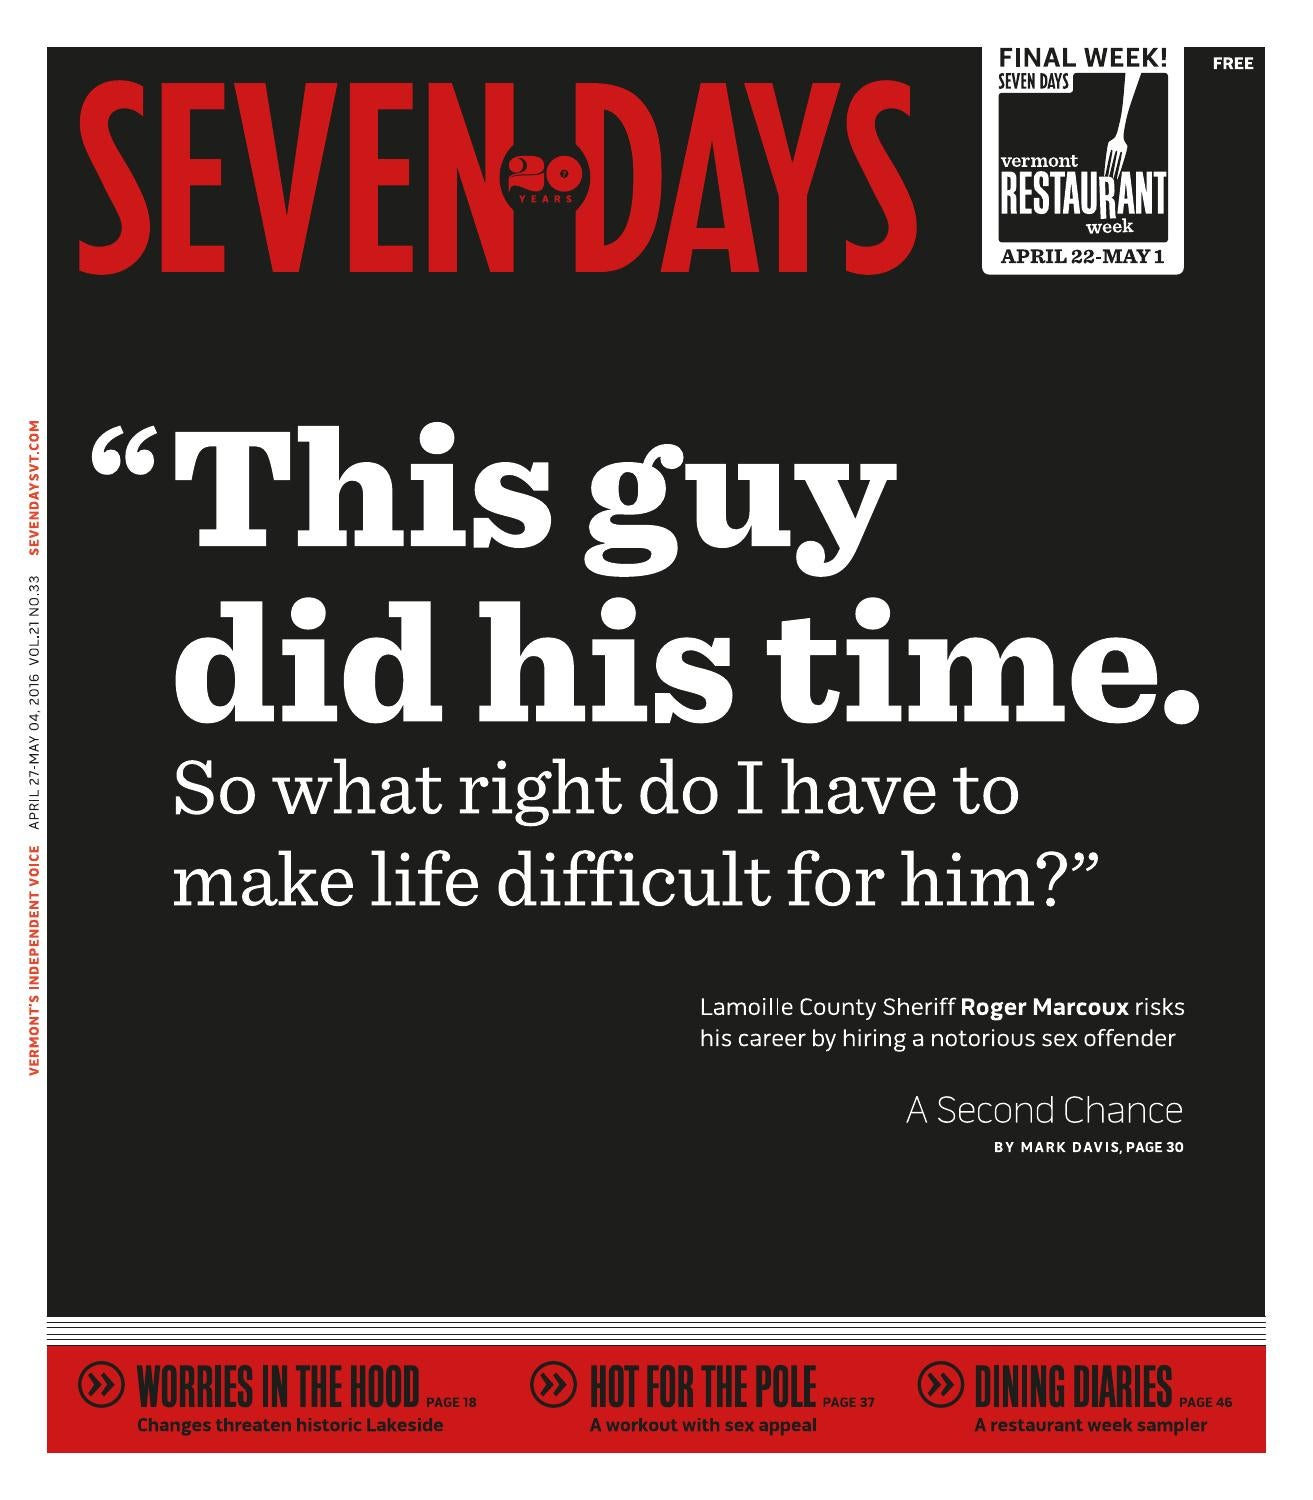 Seven days april 27 2016 by seven days issuu malvernweather Images